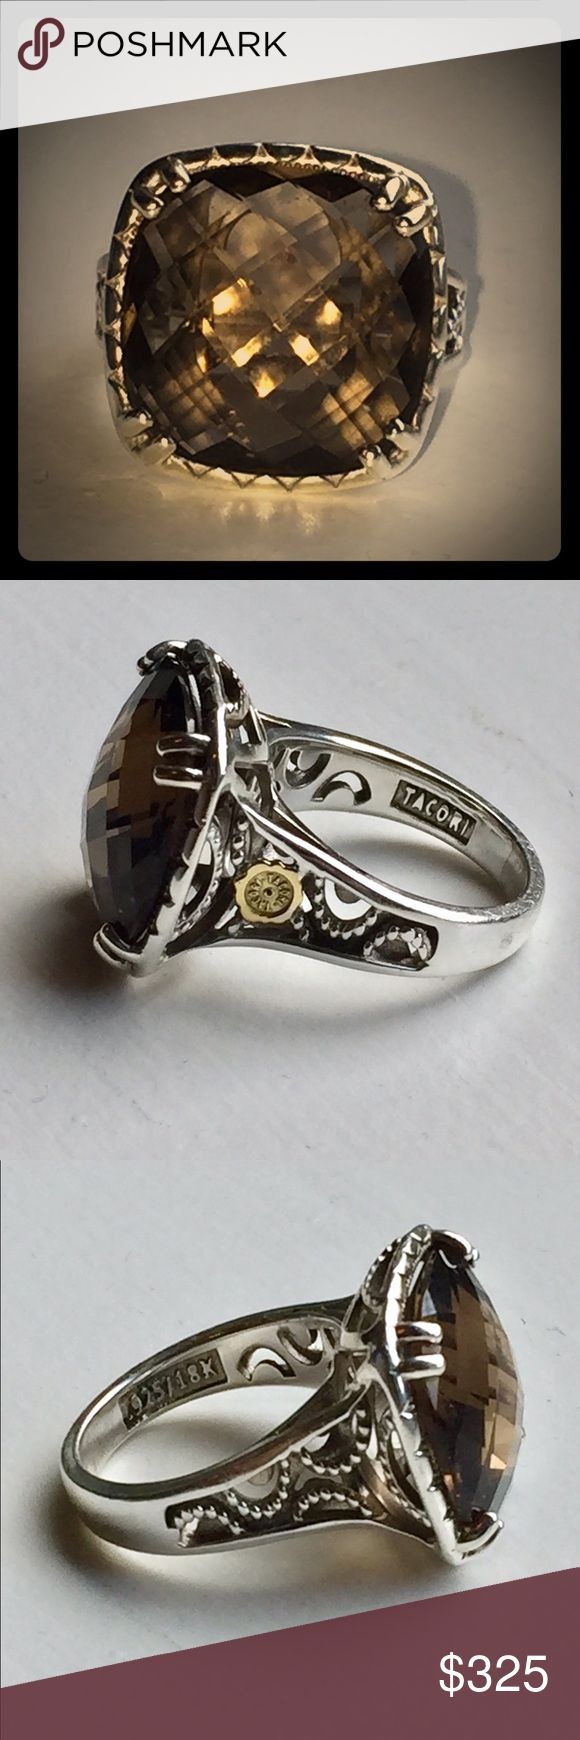 Tacori Smokey Topaz EUC -Feminine, elegant and classy! Tacori Smokey Topaz Ring. Size 7.5. Please review the Tacori website before offering. Serious inquiries only!  This is my personal Ring, nothing is wrong with it. I have many Tacori pieces and don't wear this one often. ❌Bundles, trades or low balling. Retails $598 Tacori Jewelry Rings